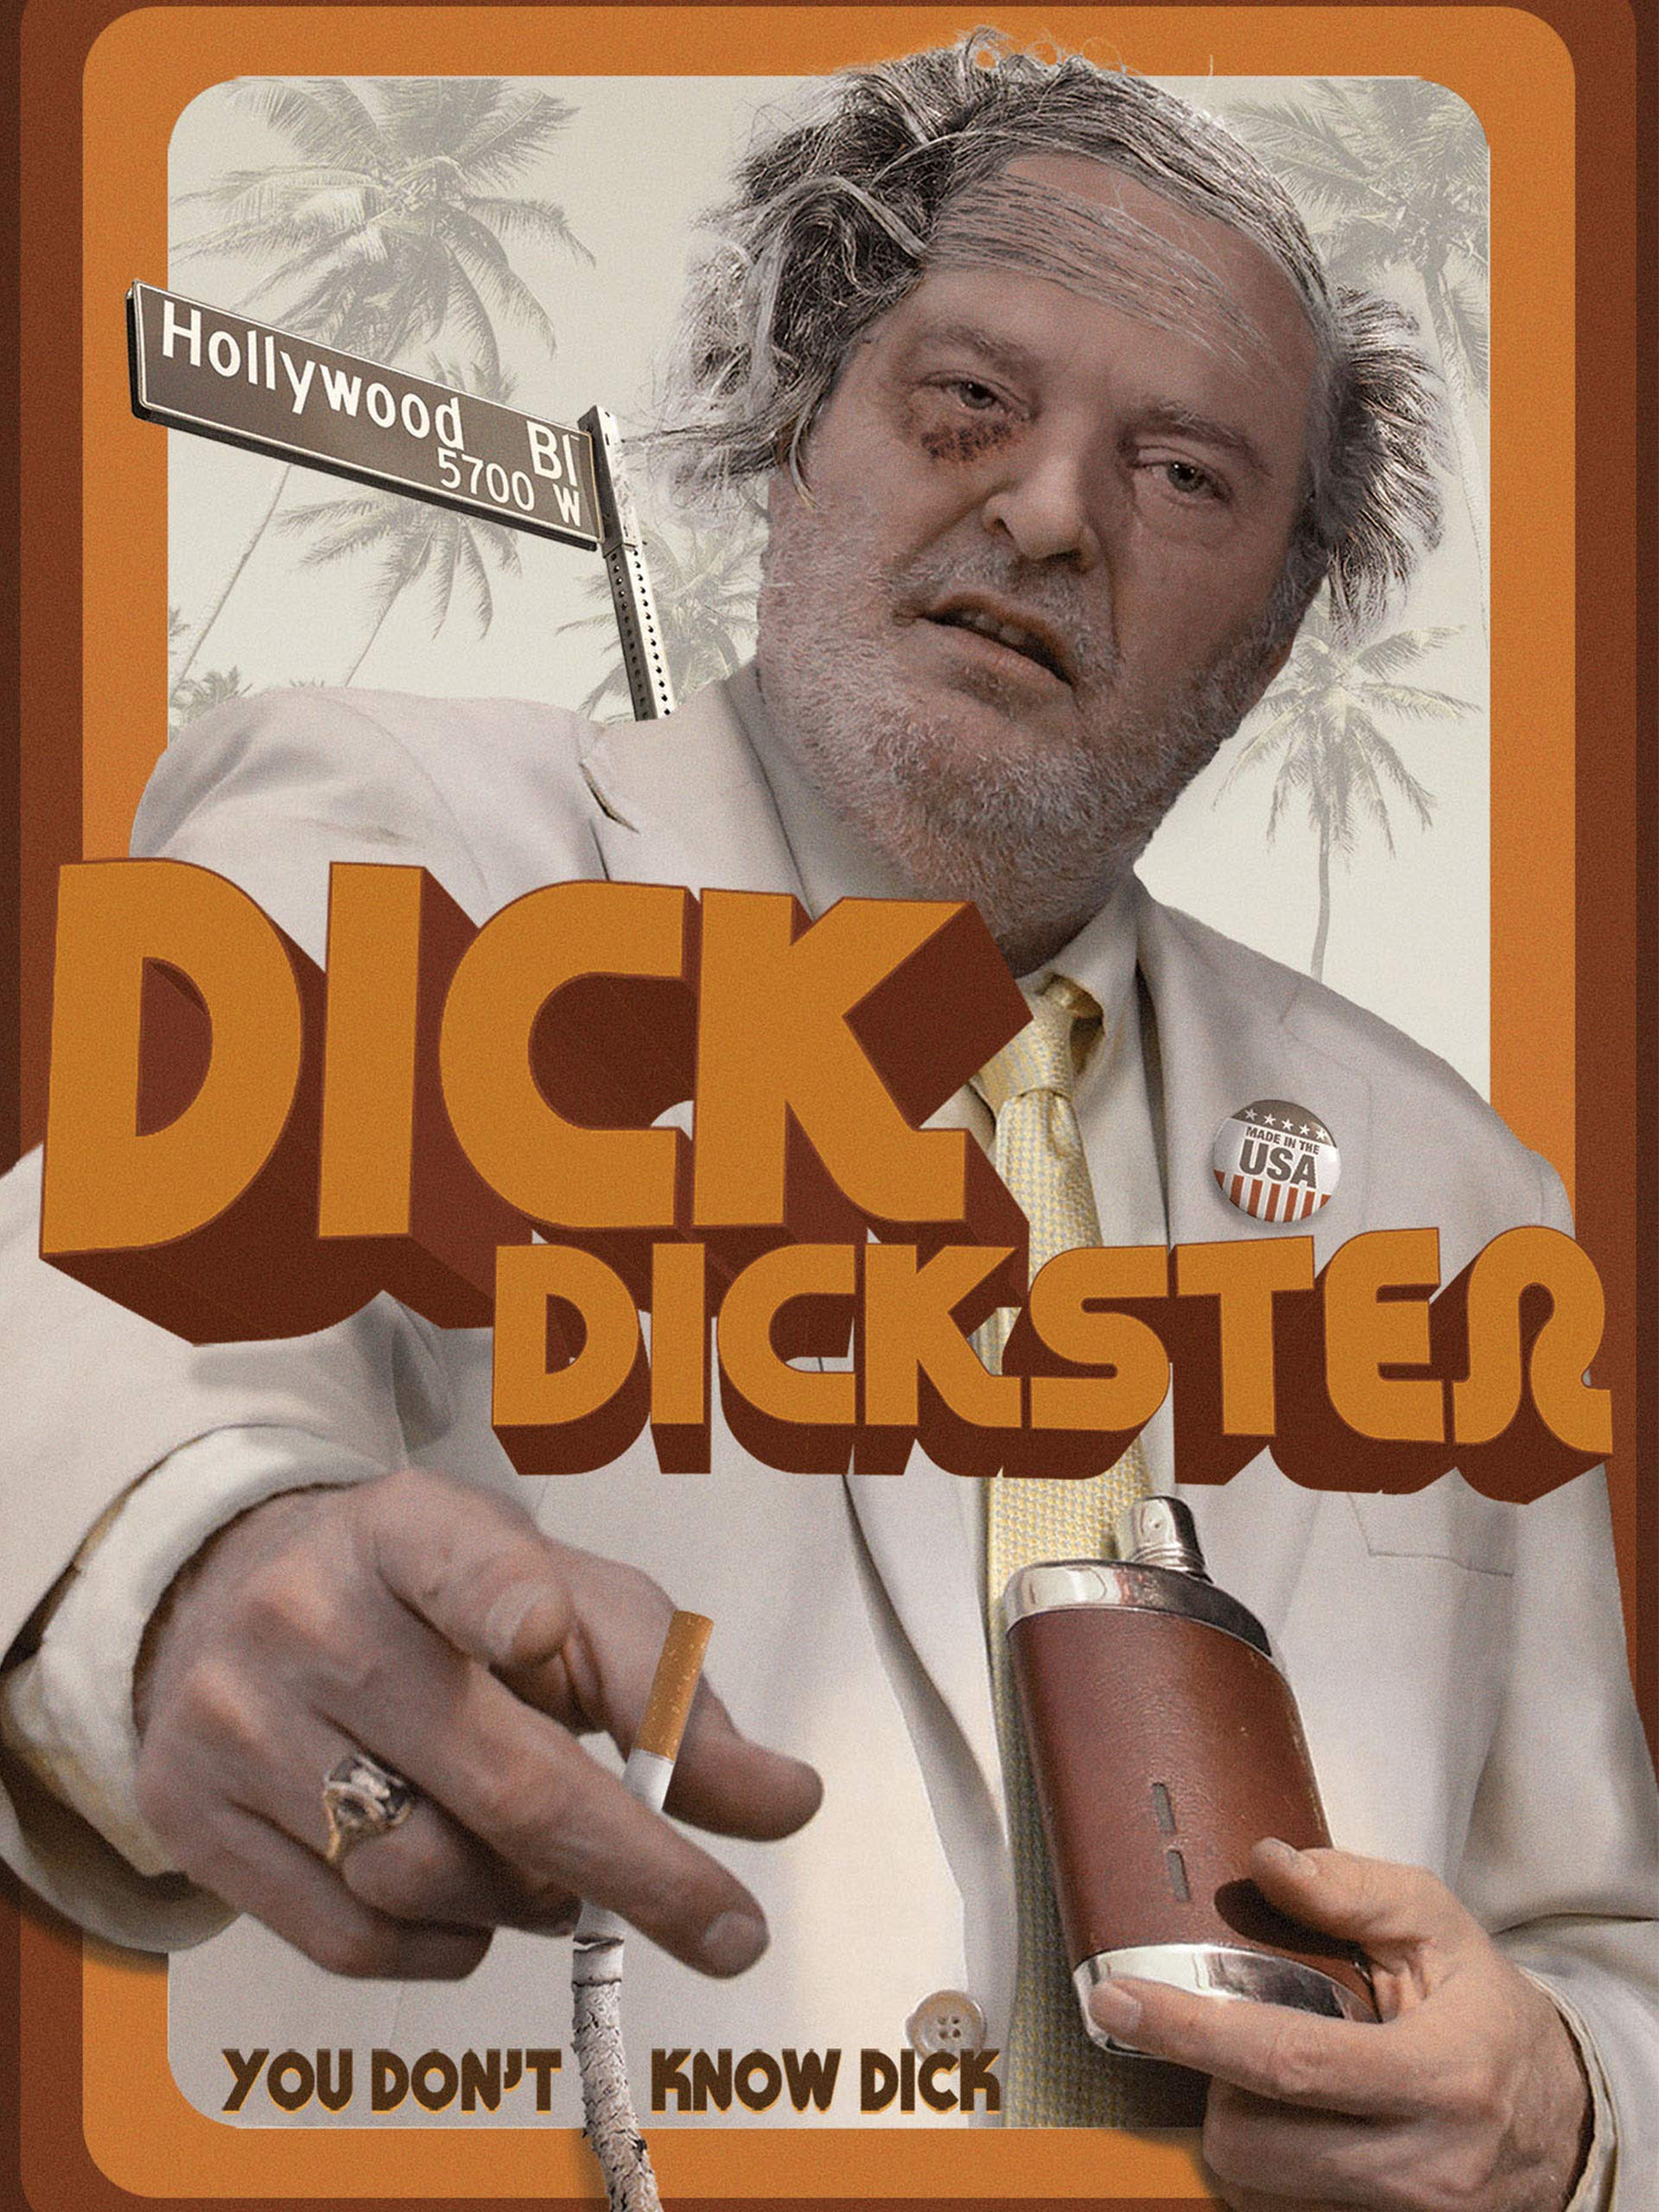 Amazon.com: Watch Dick Dickster | Prime Video